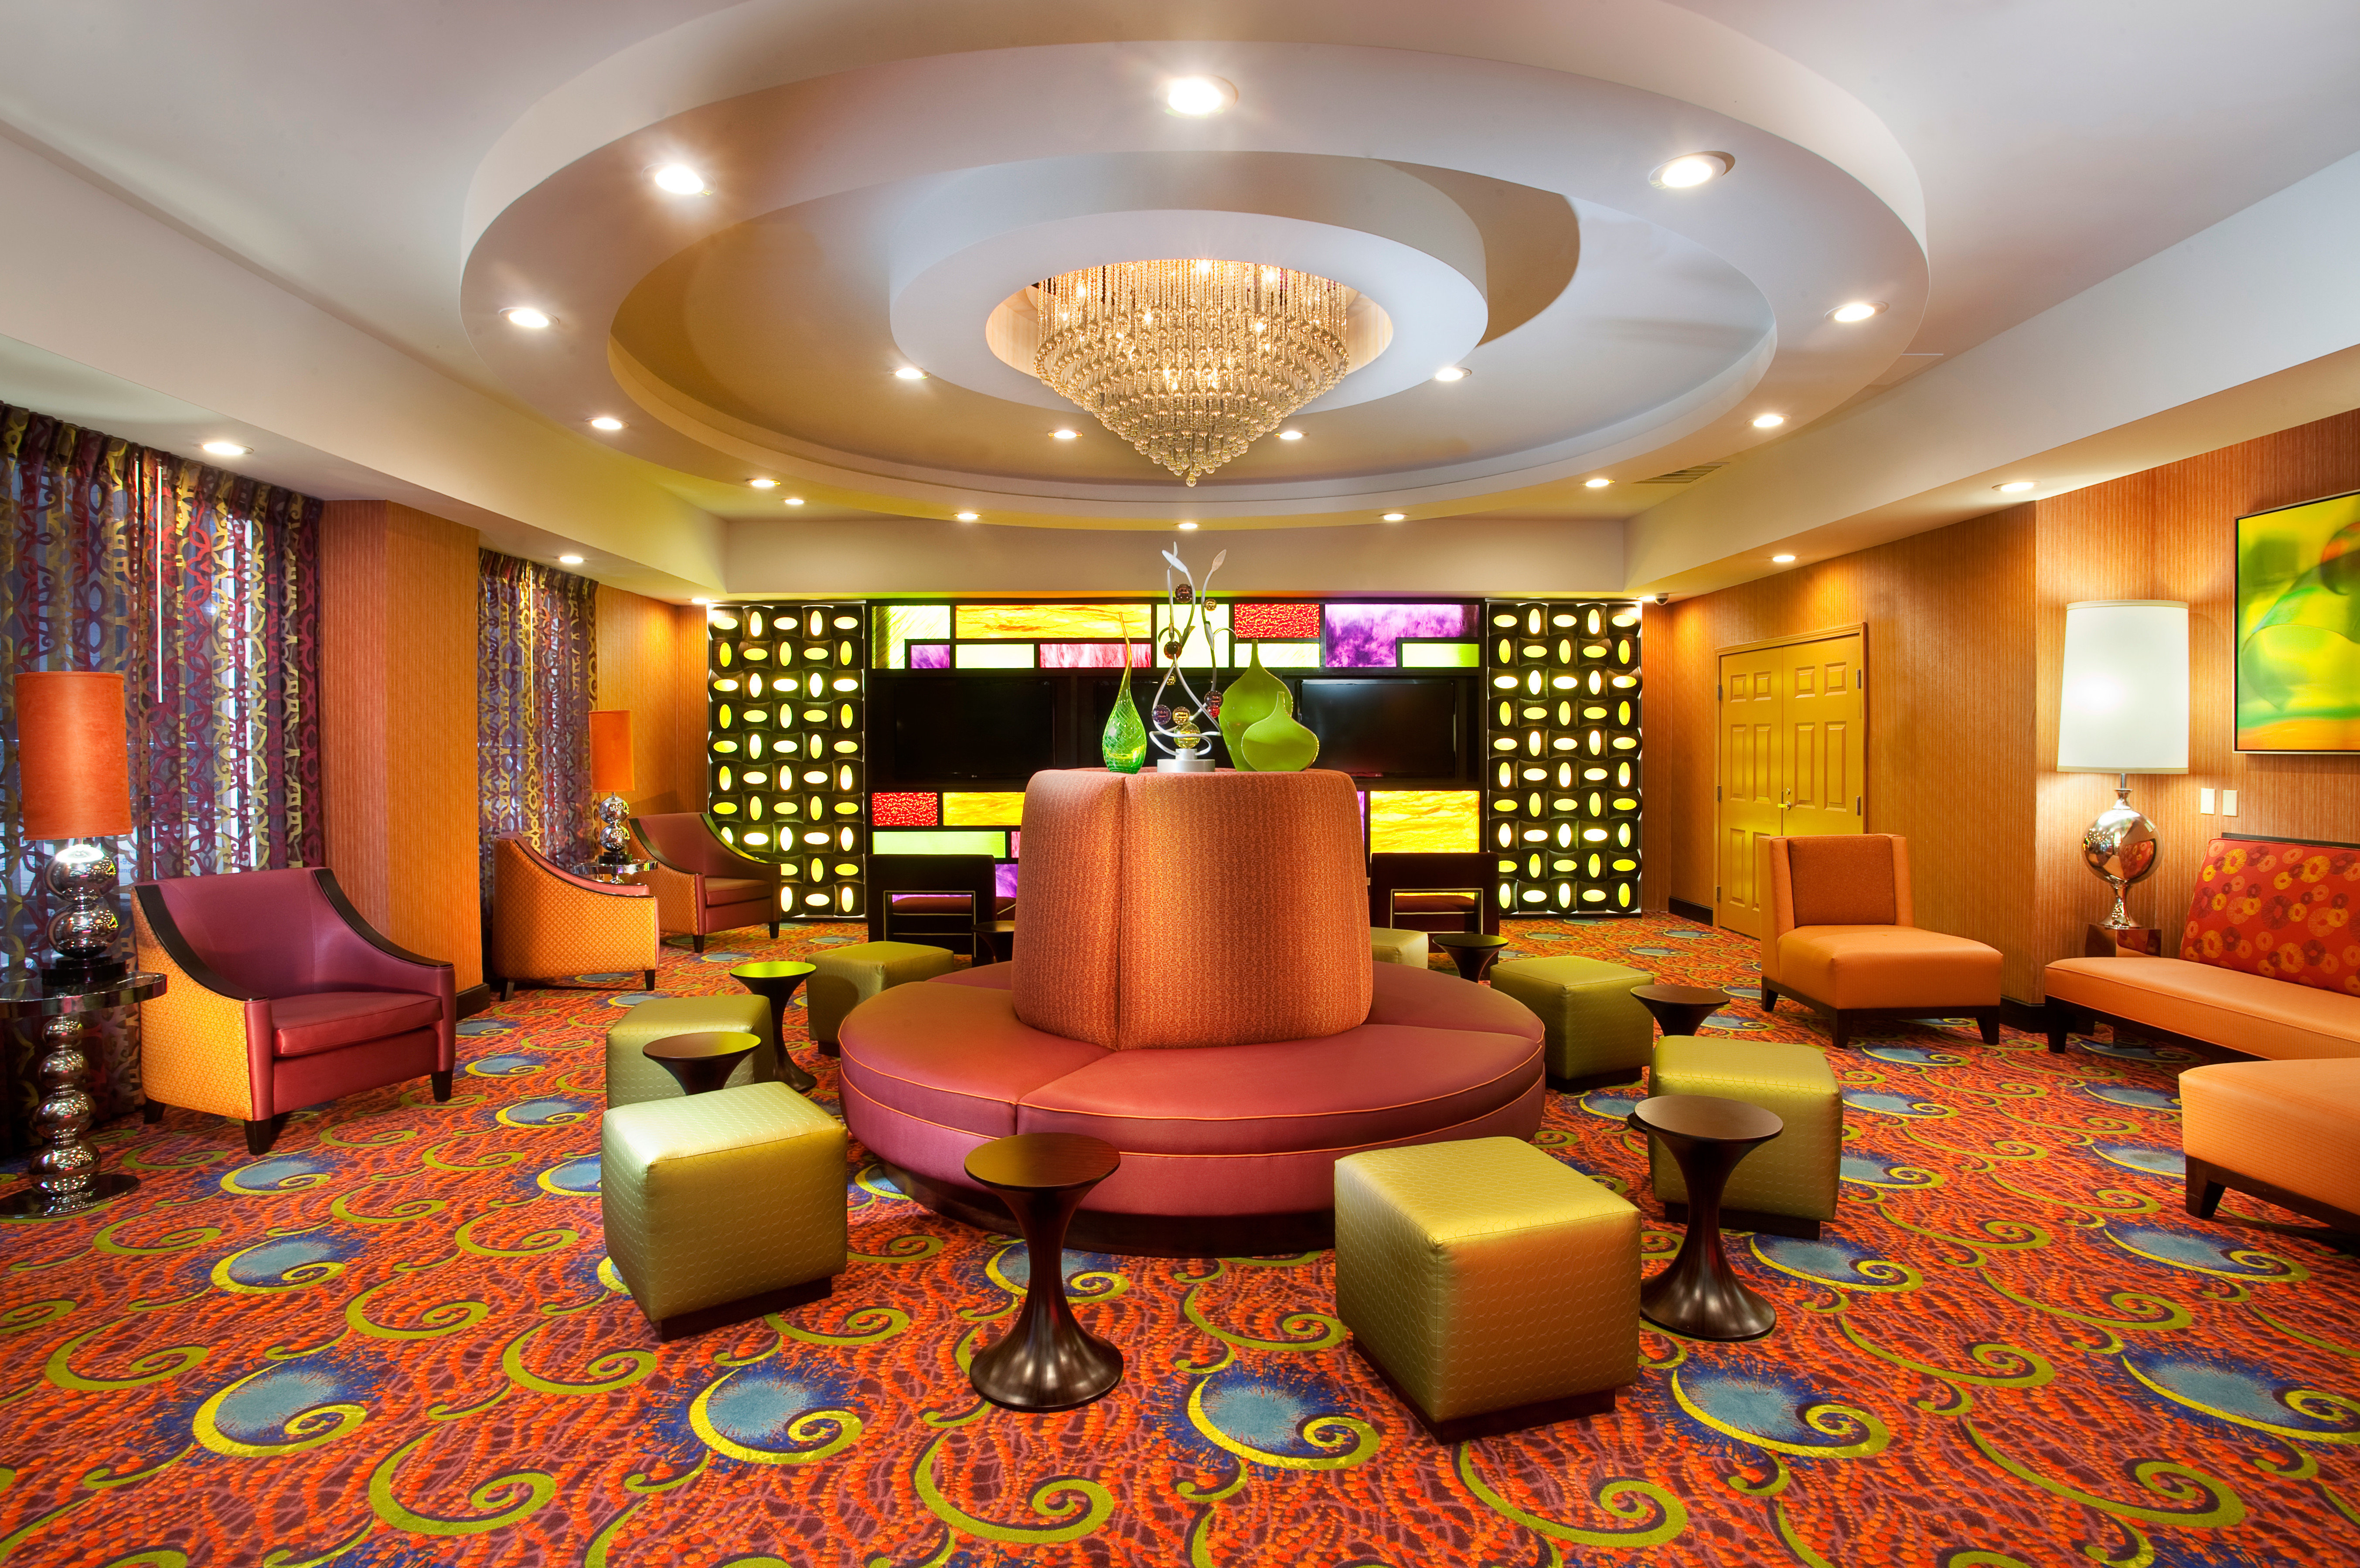 Business City Cultural Drink Lobby Nightlife living room recreation room function hall Suite